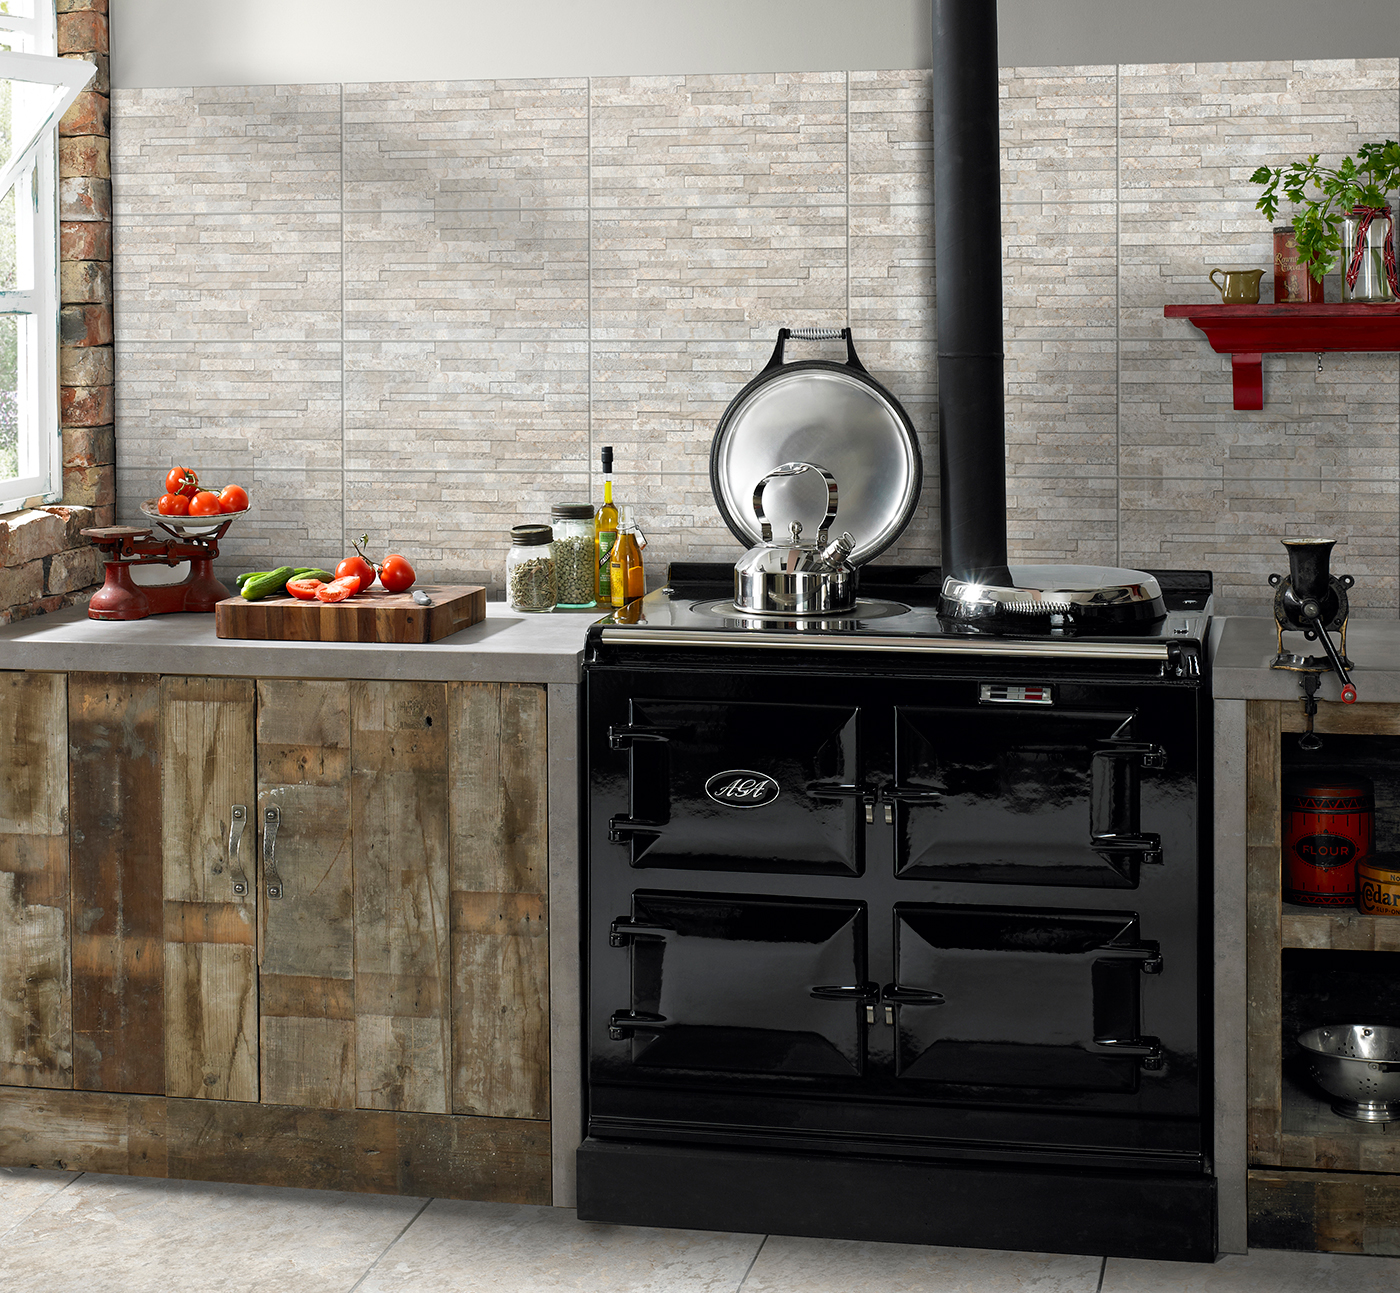 HD Slate - Textured kitchen tiles from the HD tile ranges